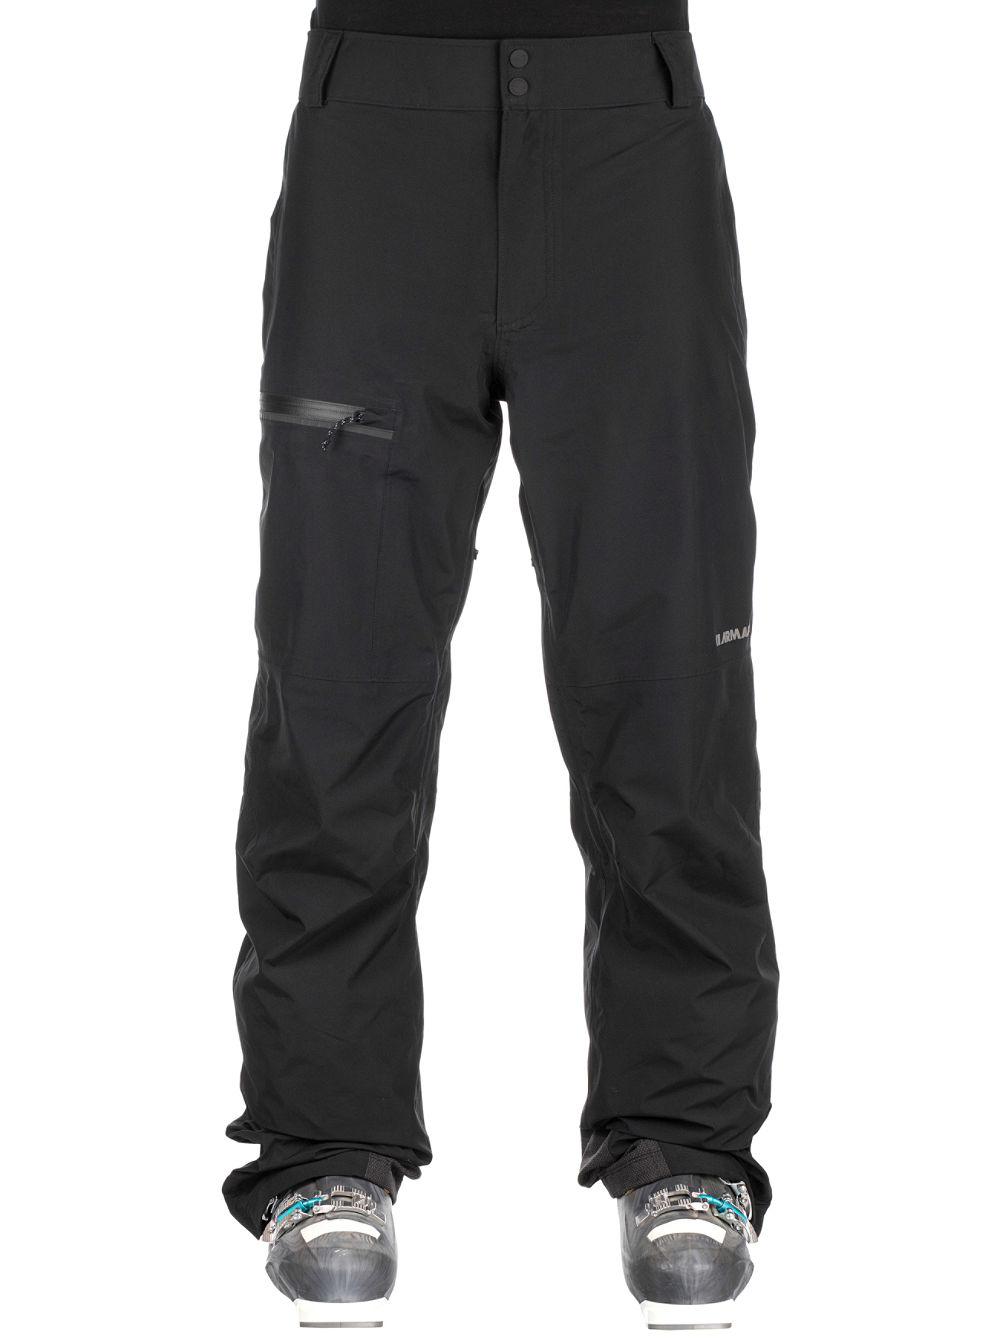 Atlantis Gore-Tex Pants